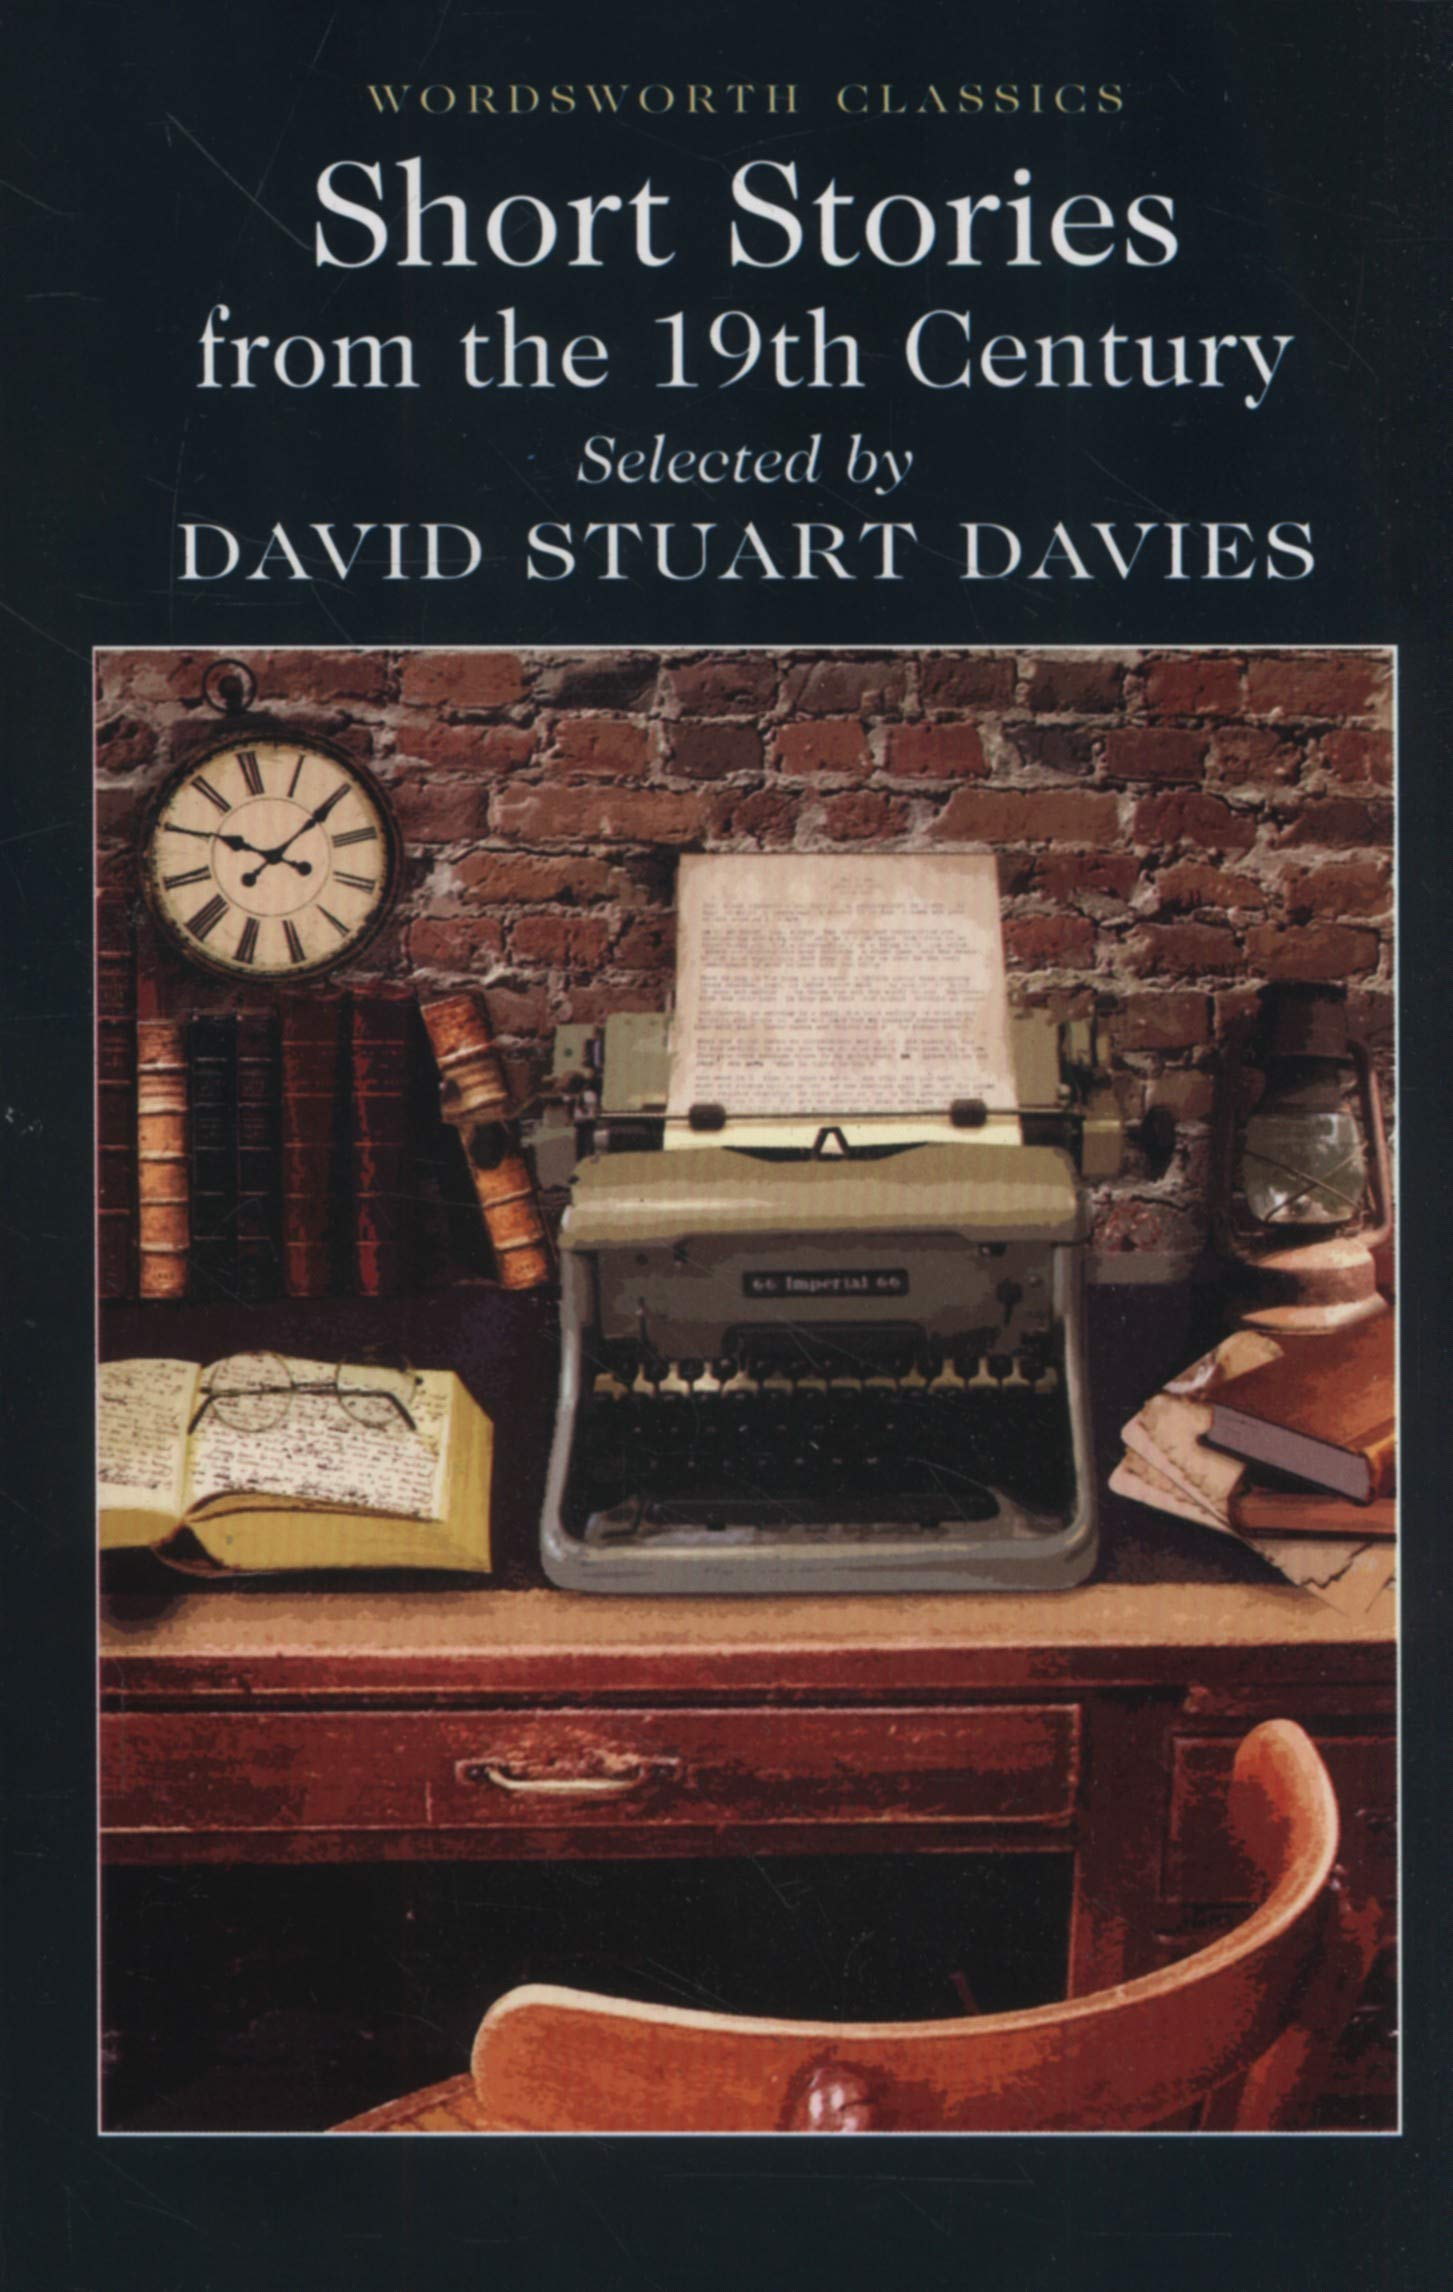 Short Stories from the Nineteenth Century Paperback – Feb 5 2000